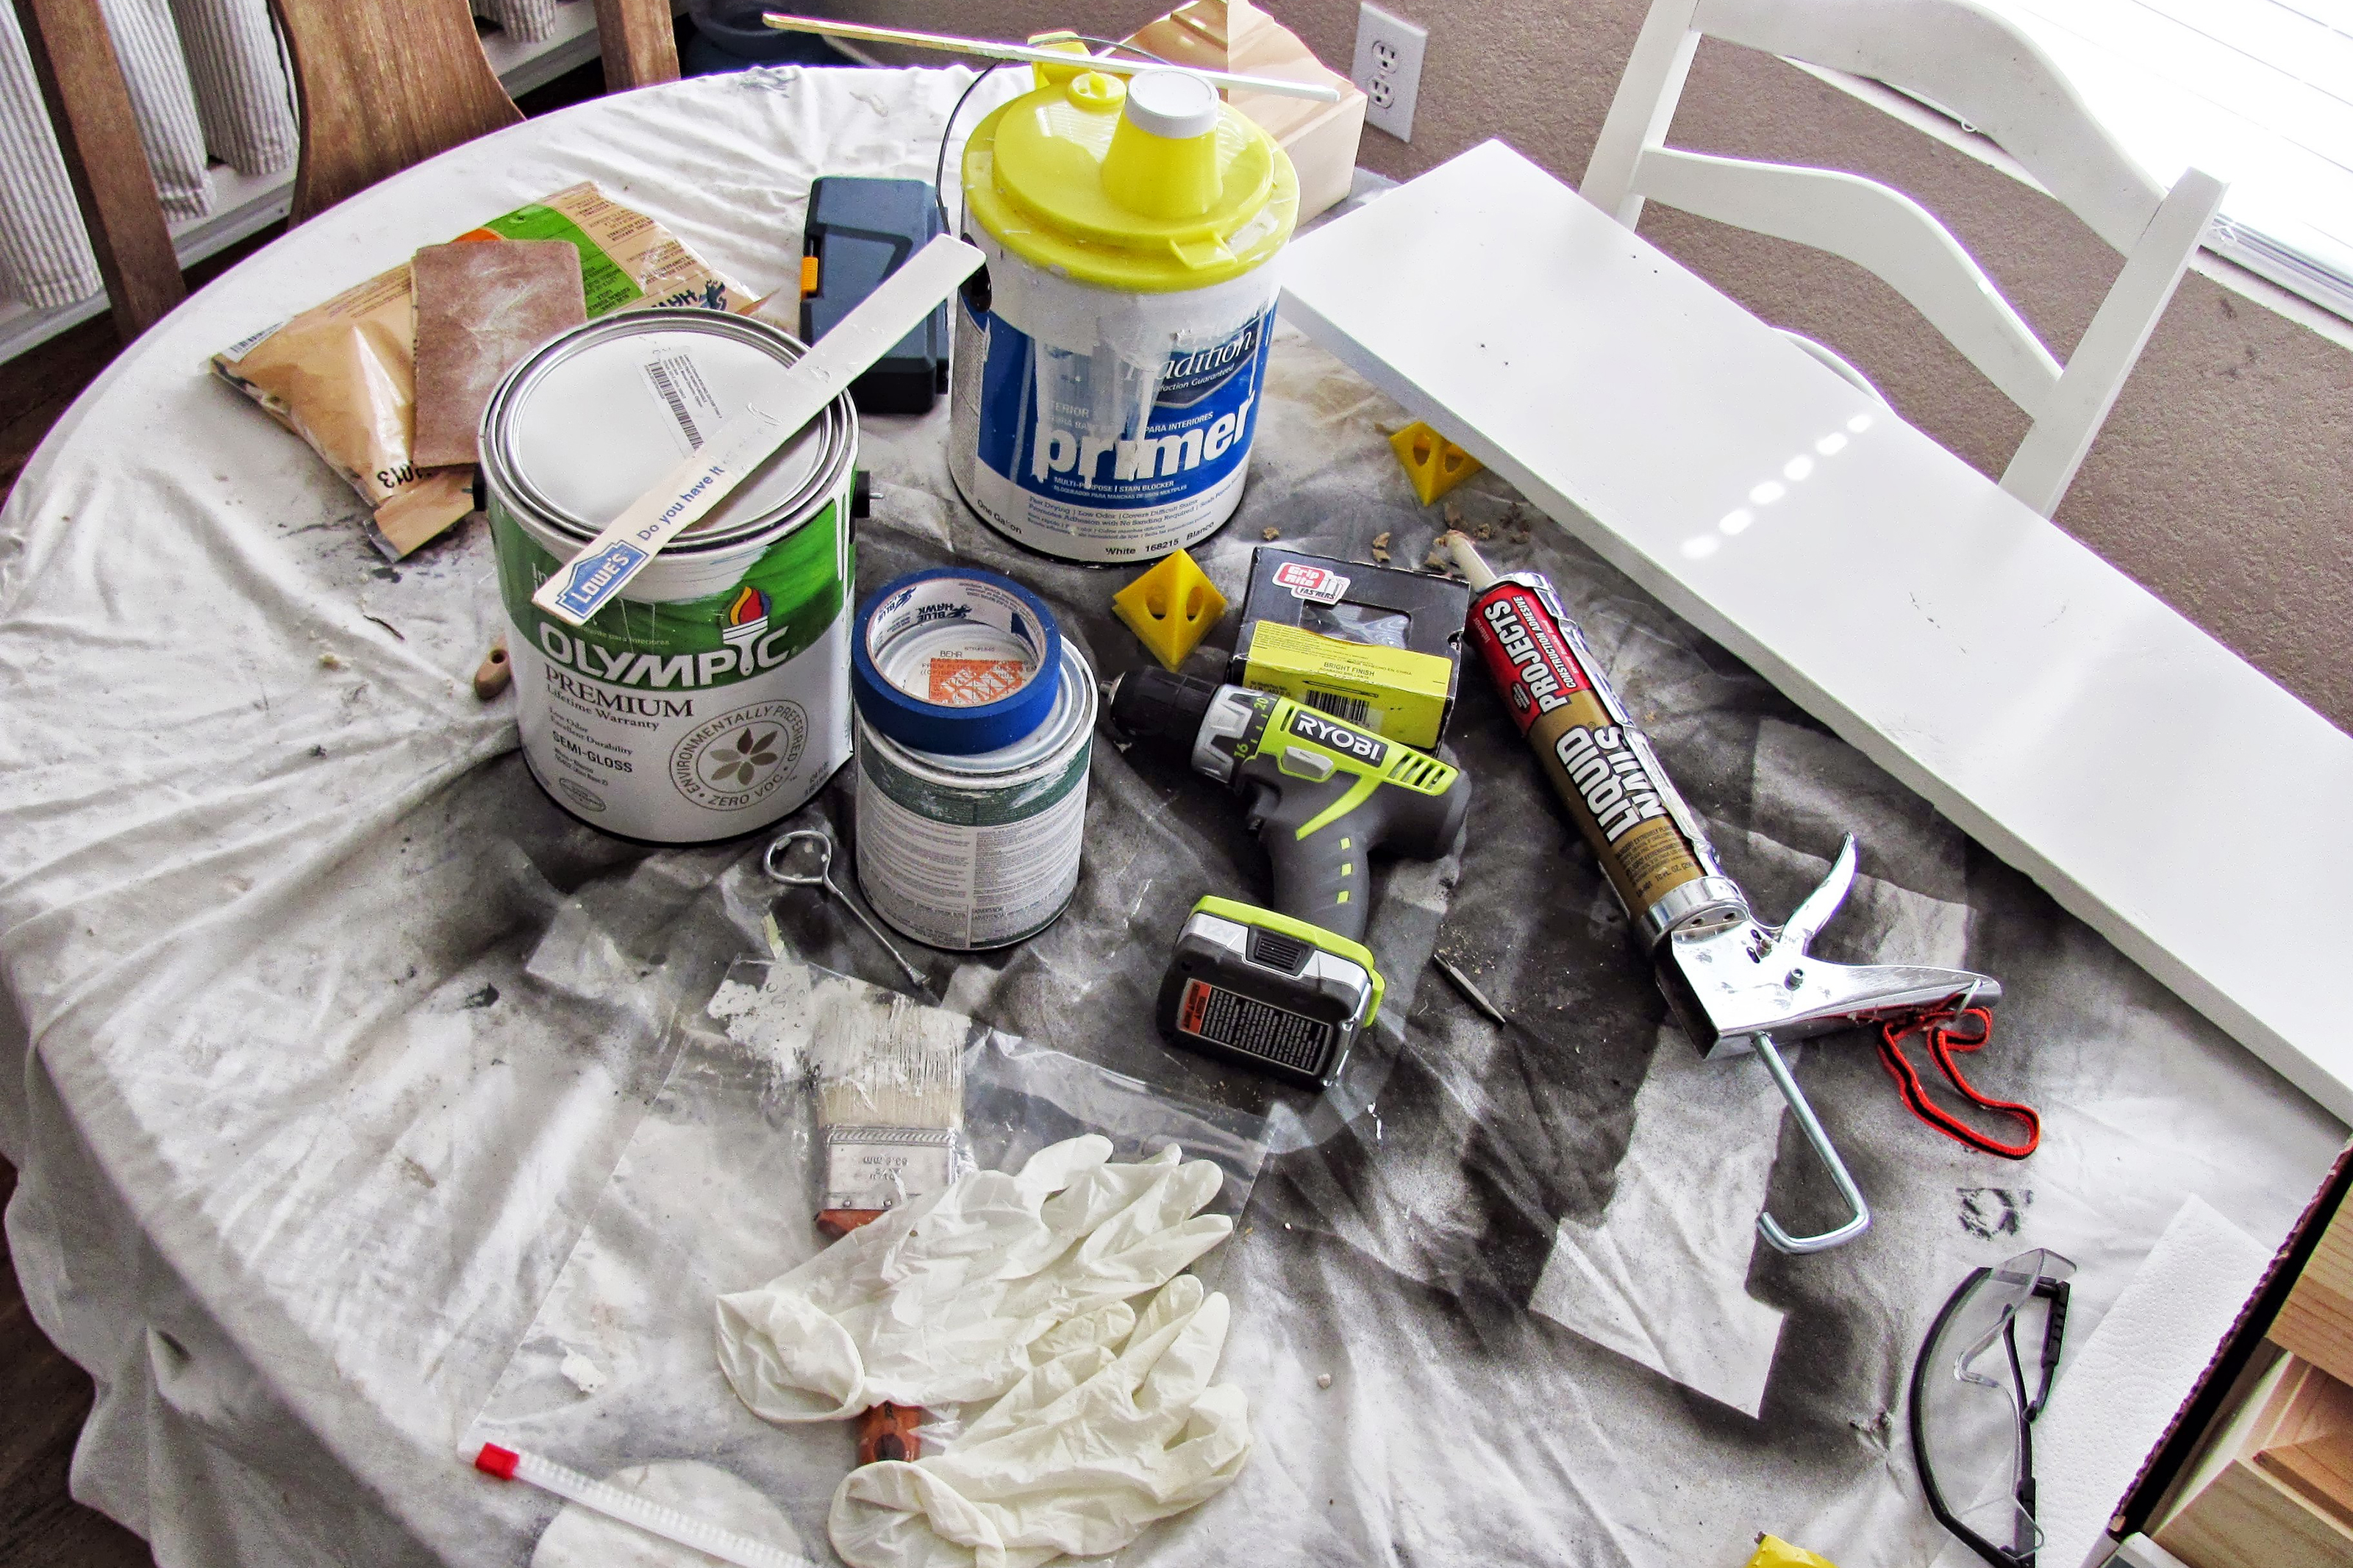 Caulk and other home maintenance products on a table